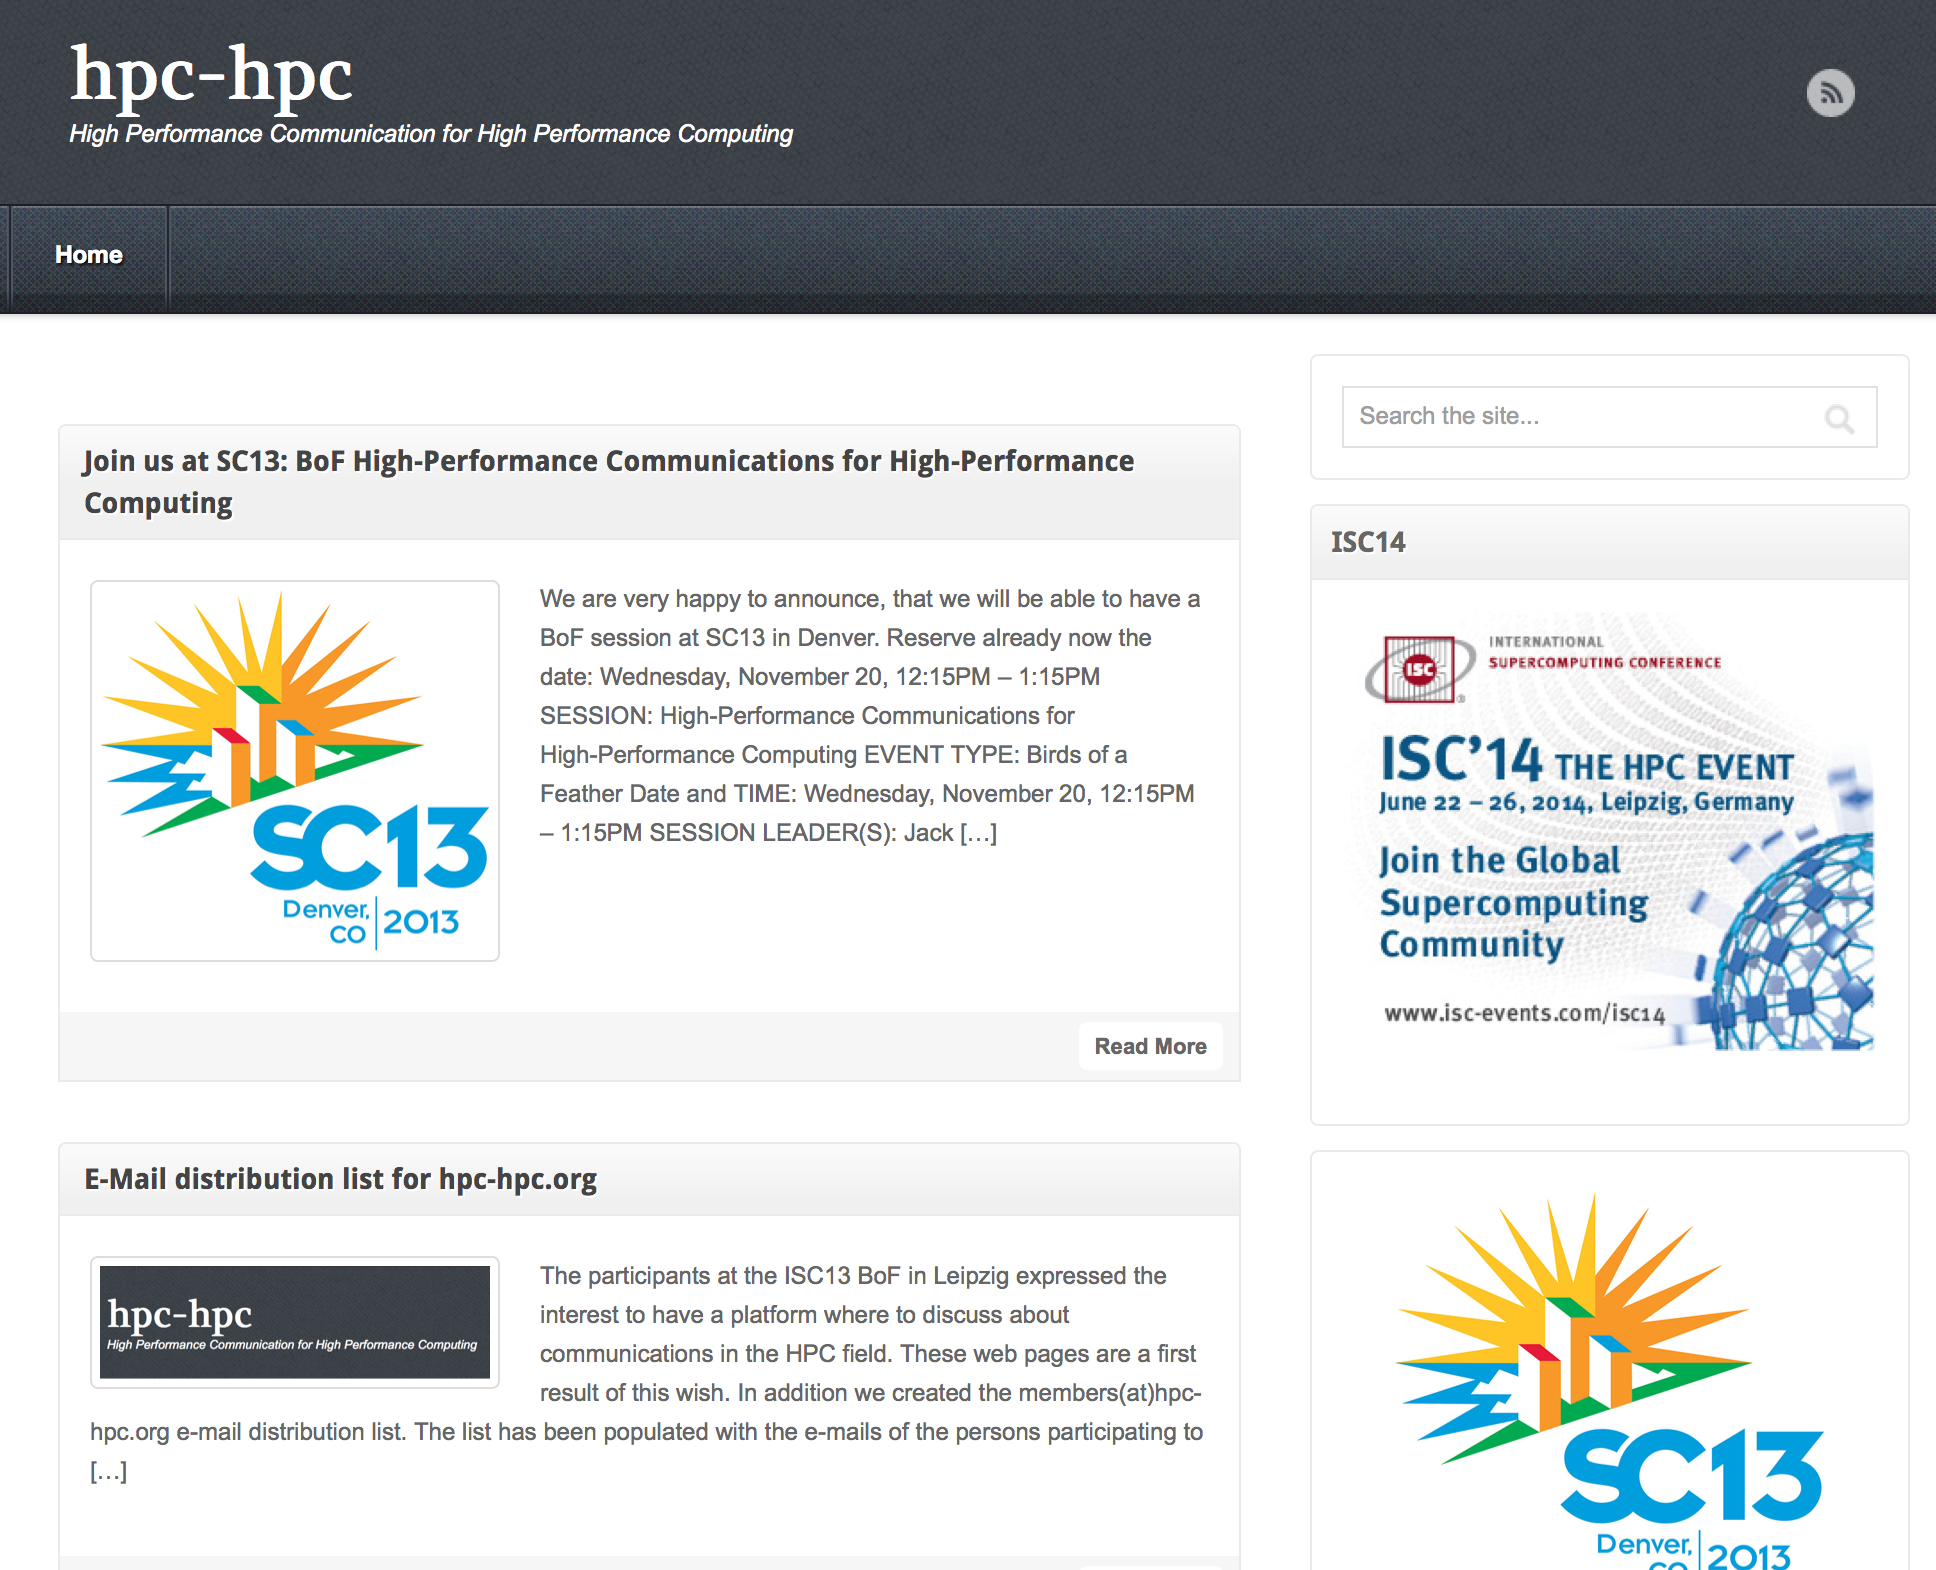 Join us at SC13: BoF High-Performance Communications for High-Performance Computing